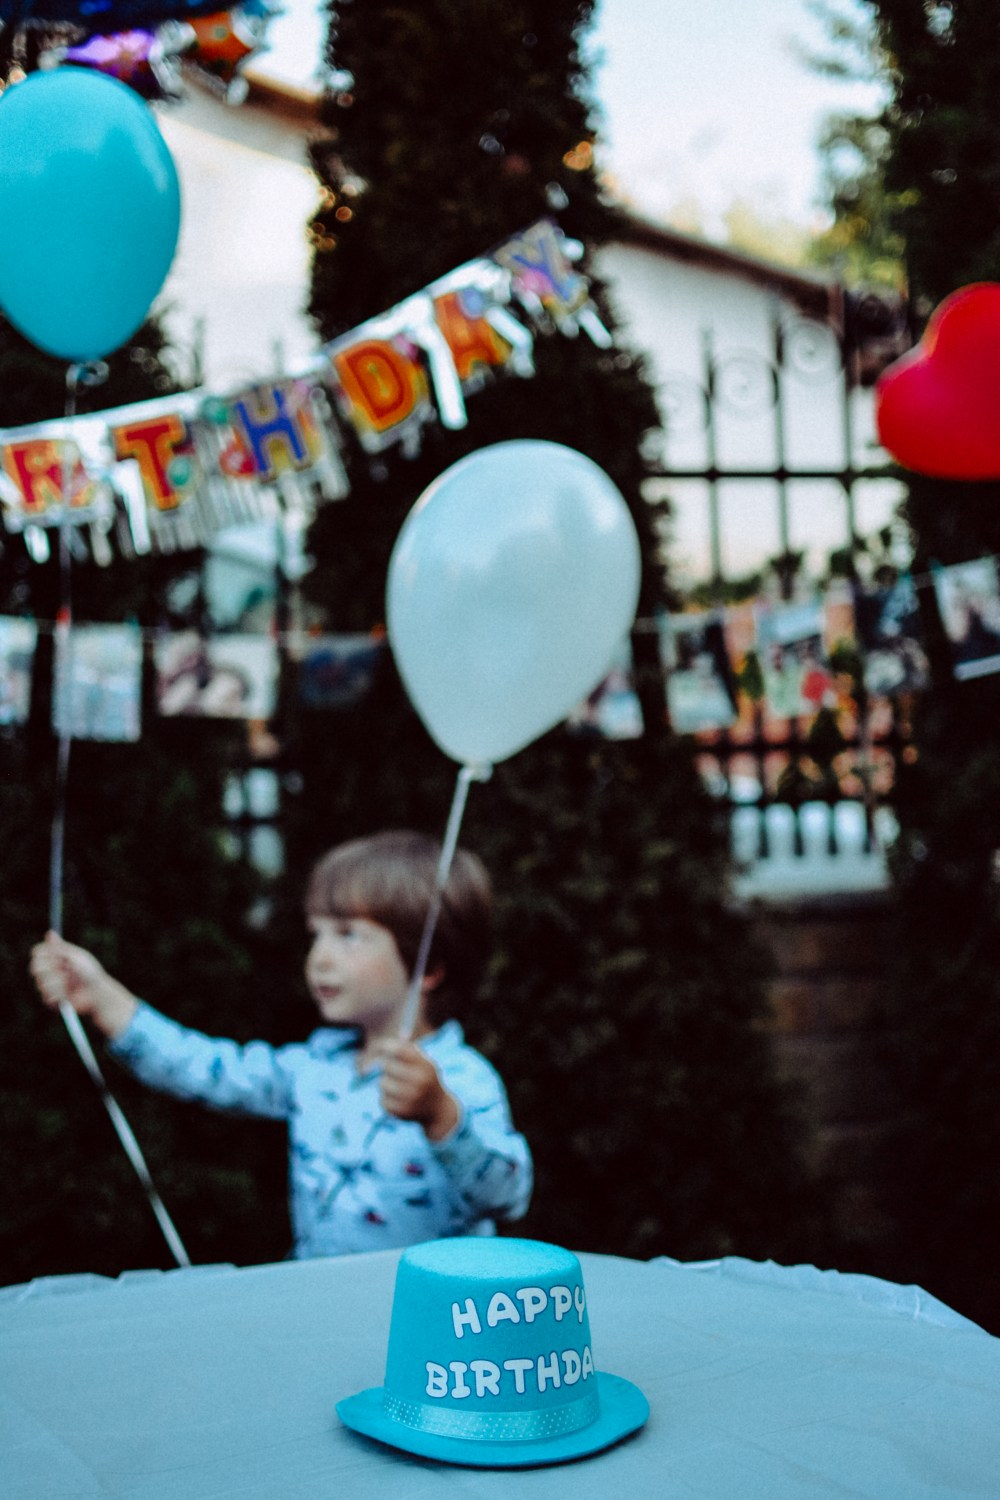 Birthday Boy Pictures Download Free Images On Unsplash